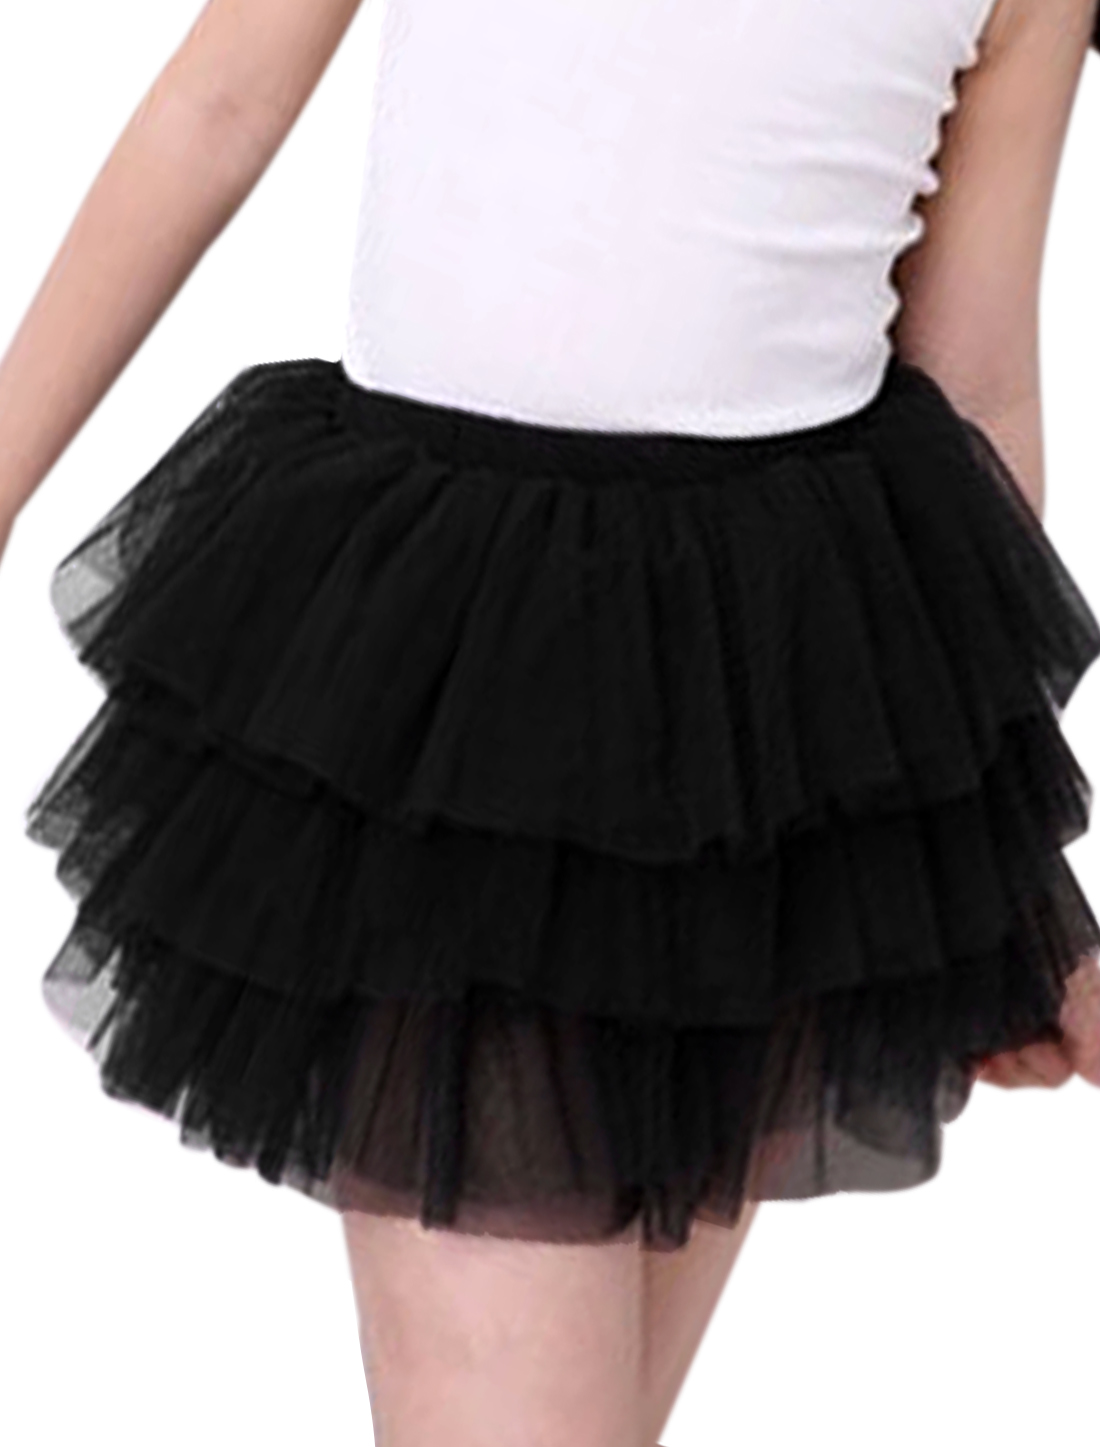 Girls Elastic Waist Mesh Panel Tiered A Line Skirt Black 3T